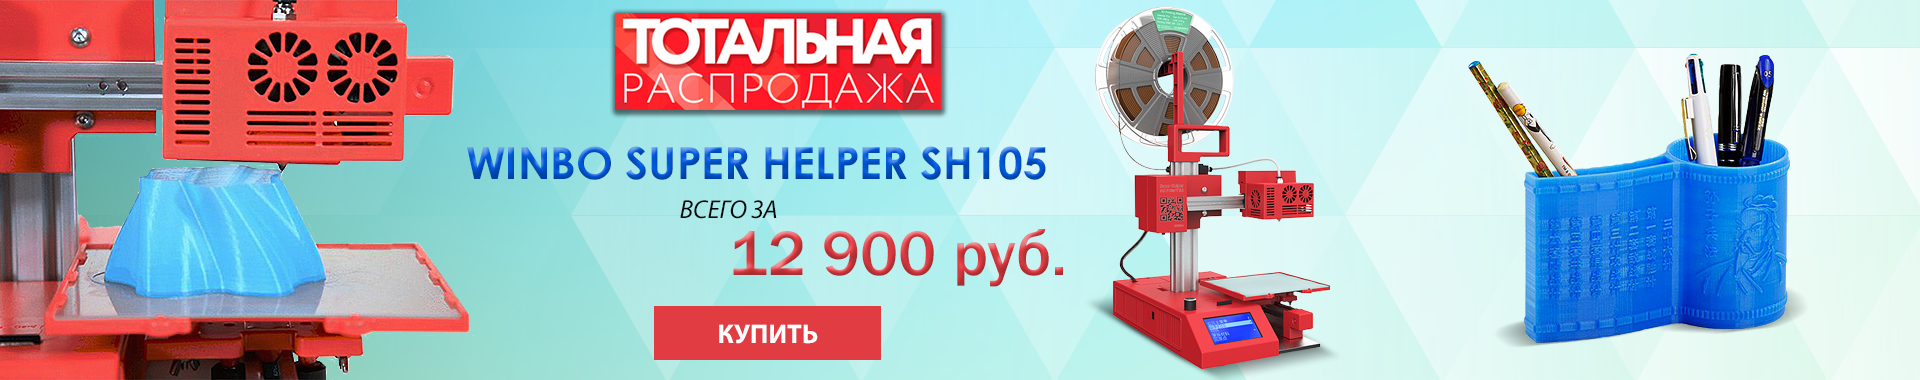 Акция Winbo Super Helper